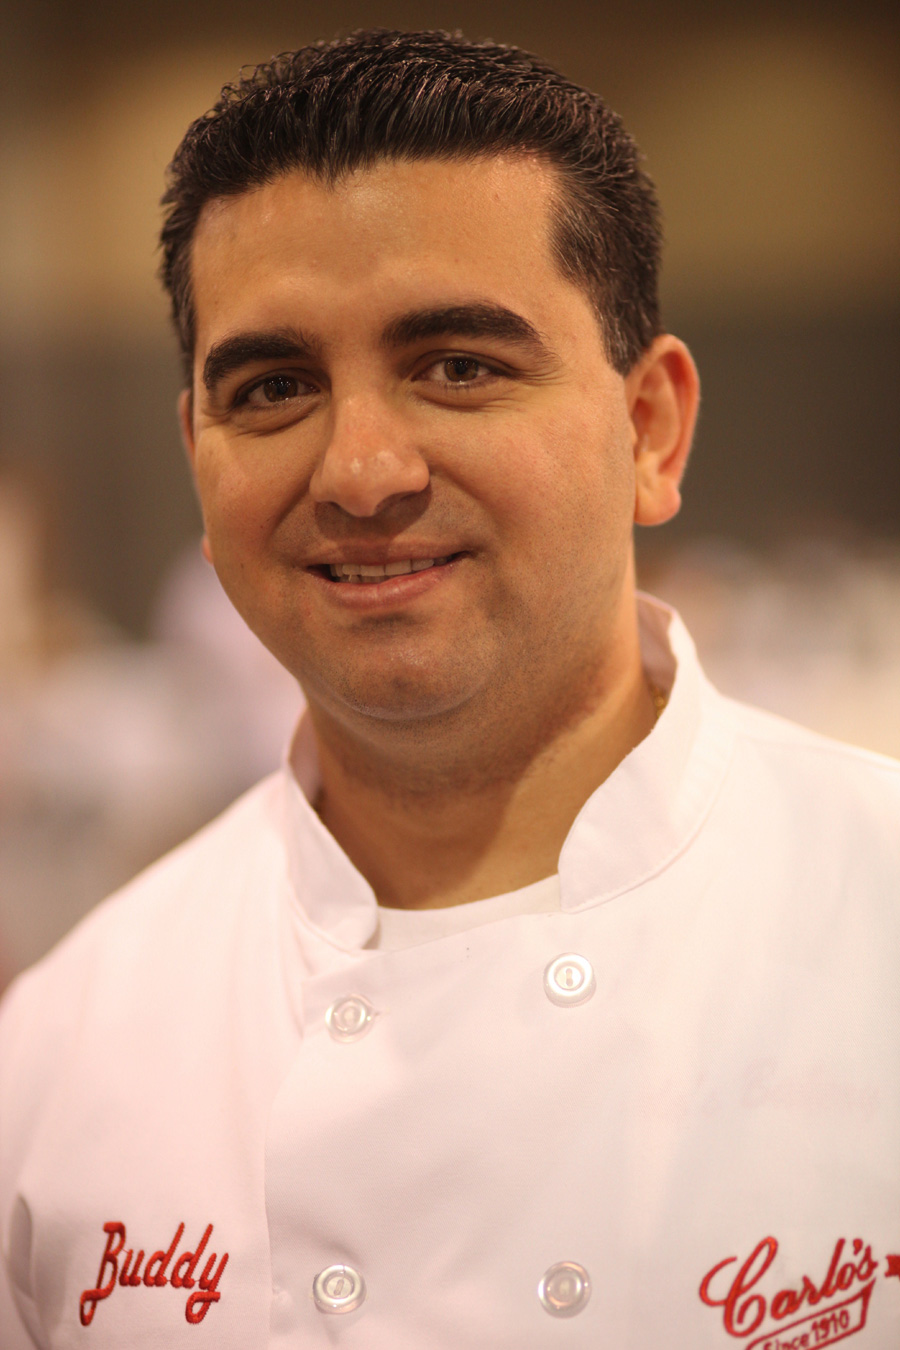 how can meet buddy valastro